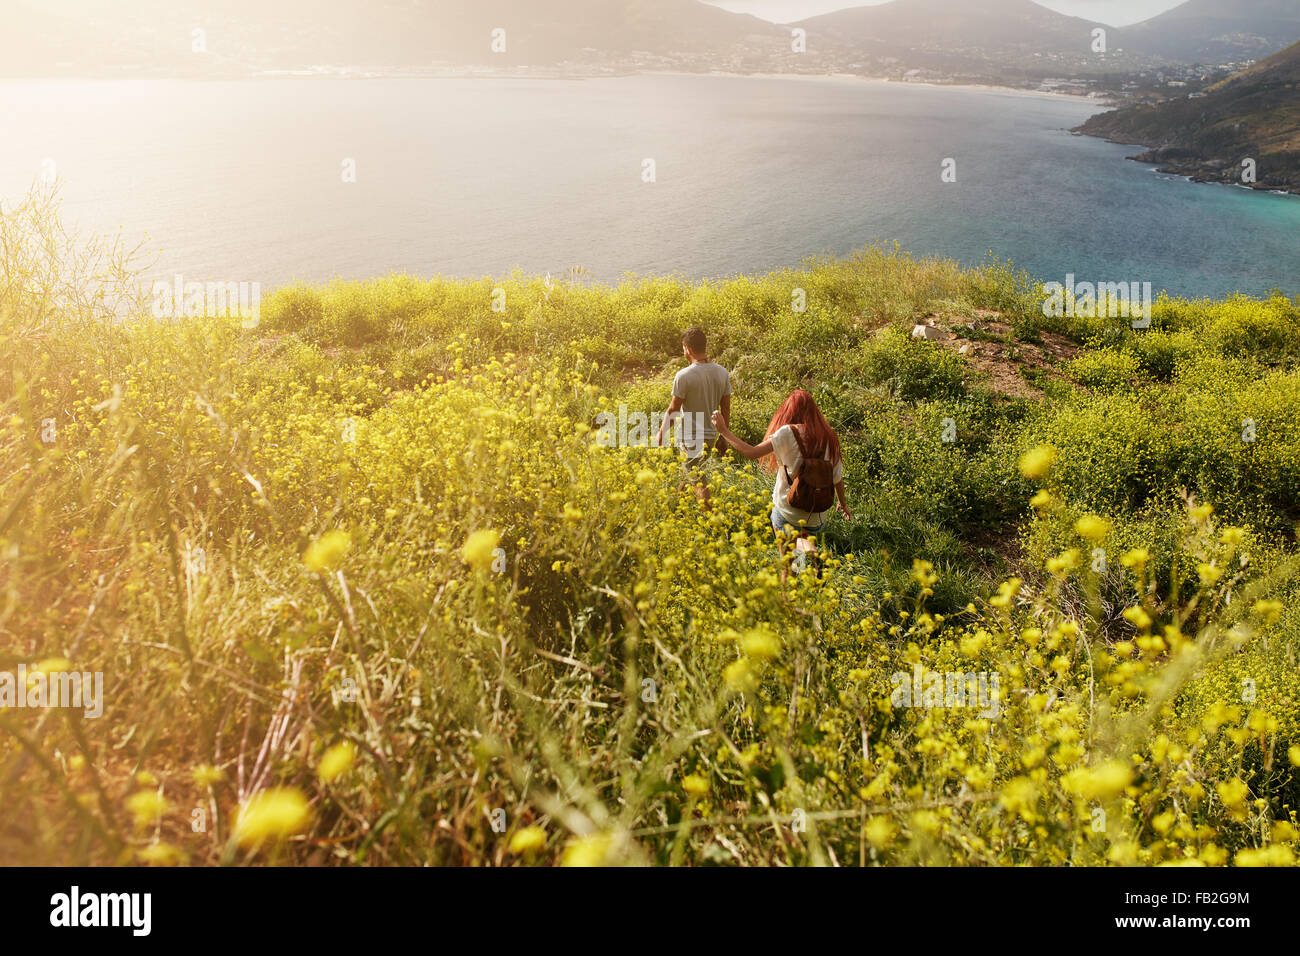 Couple hiking towards the coastline, walking on pathway through grassland, on a summer day. - Stock Image